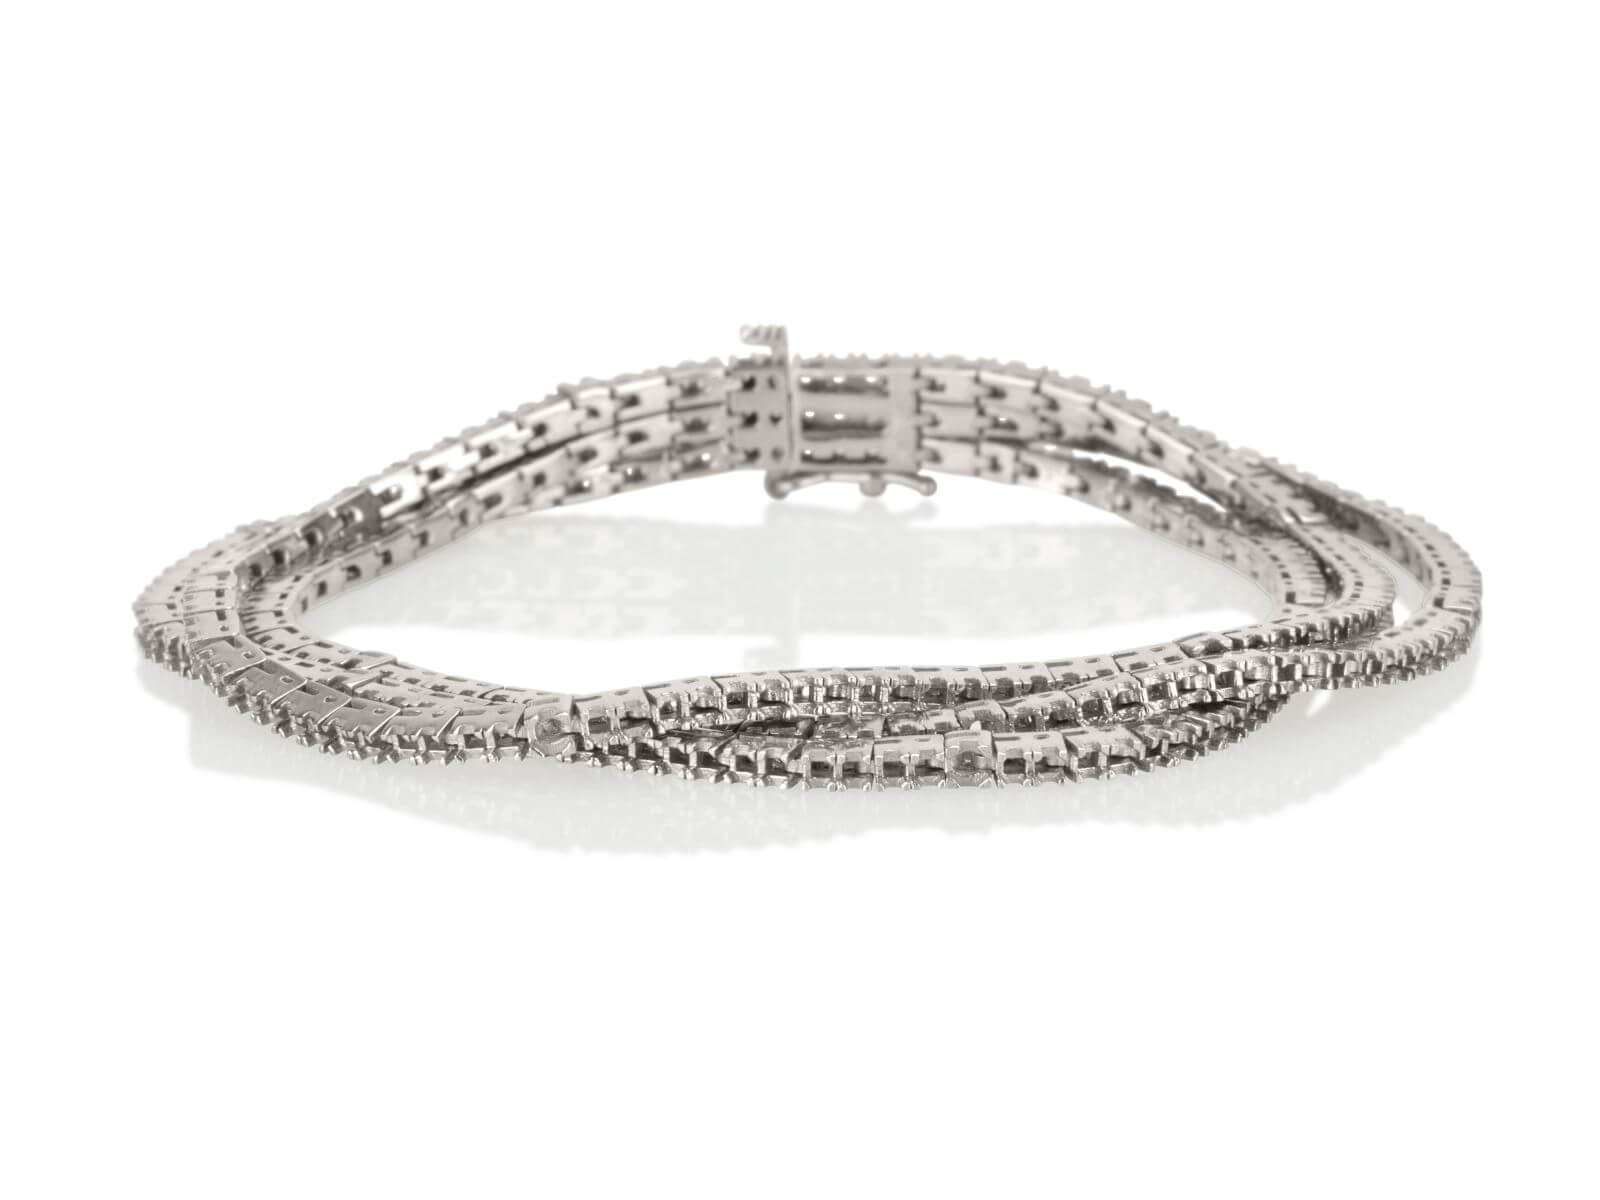 Tennis bracelet 3 Lines 4 prongs 2